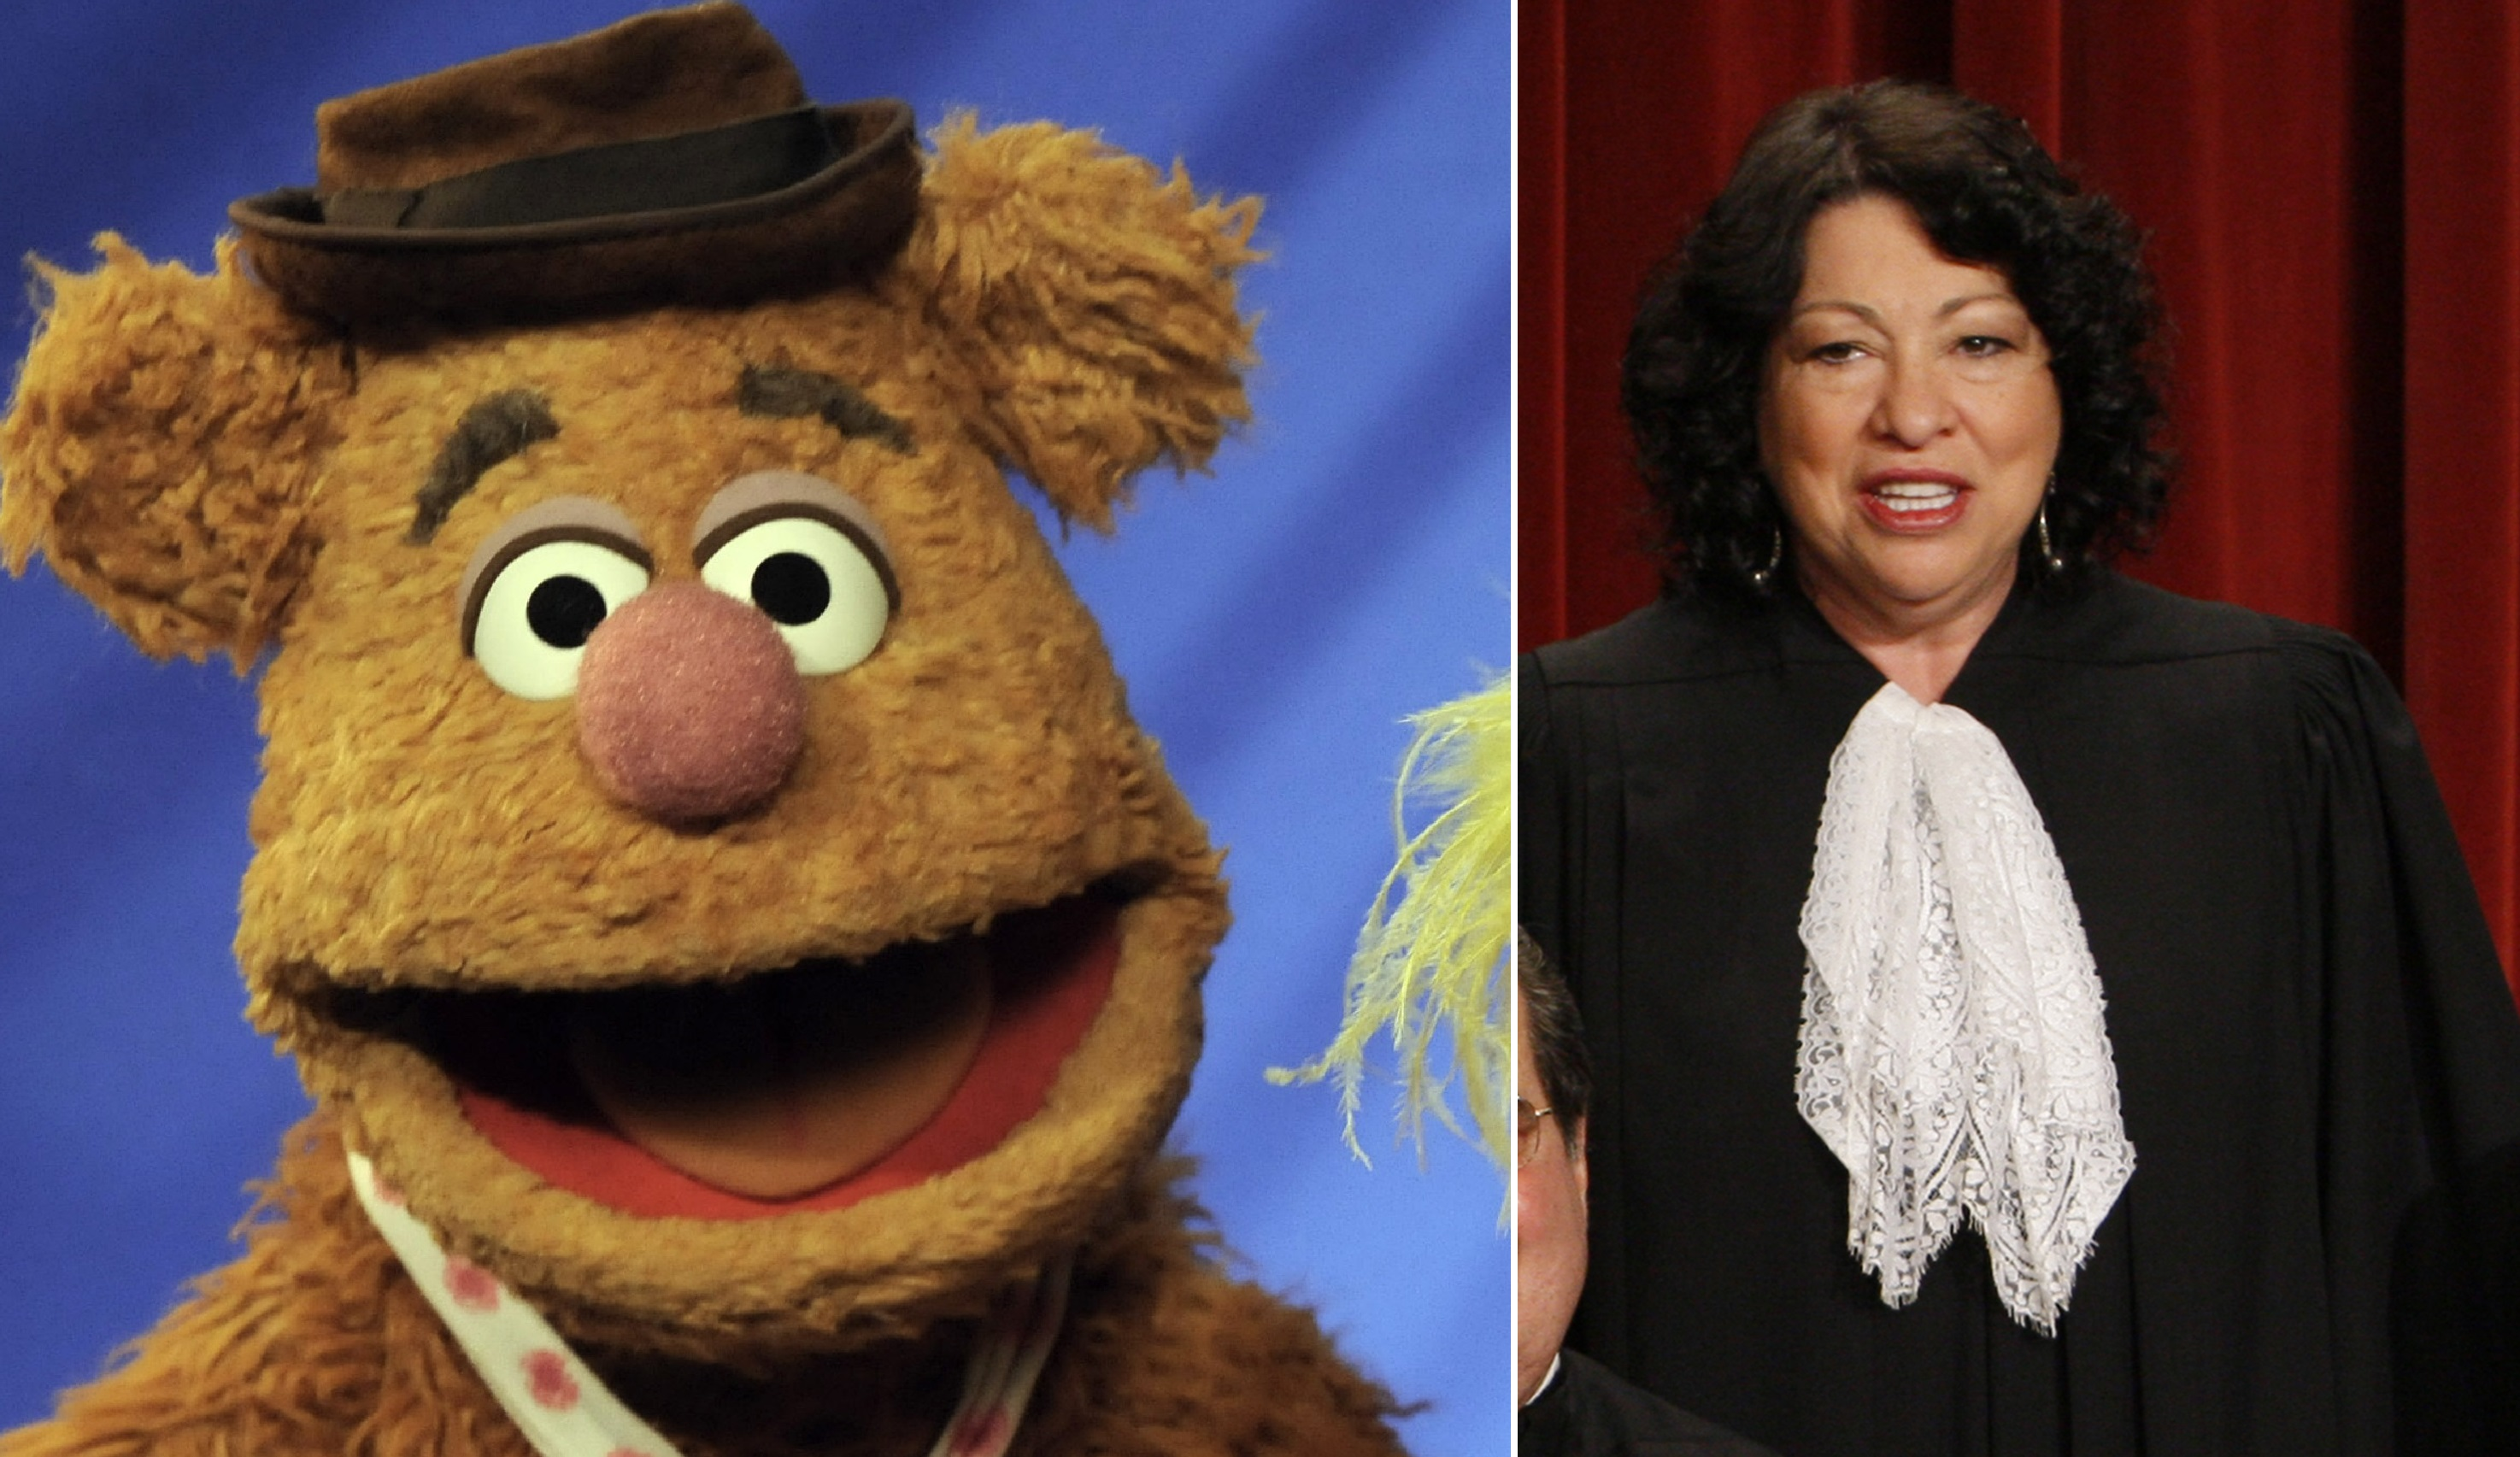 Lithwick says Sonia Sotomayor is Fozzie Bear. (Richard Drew/AP, Charles Dharapak/AP)